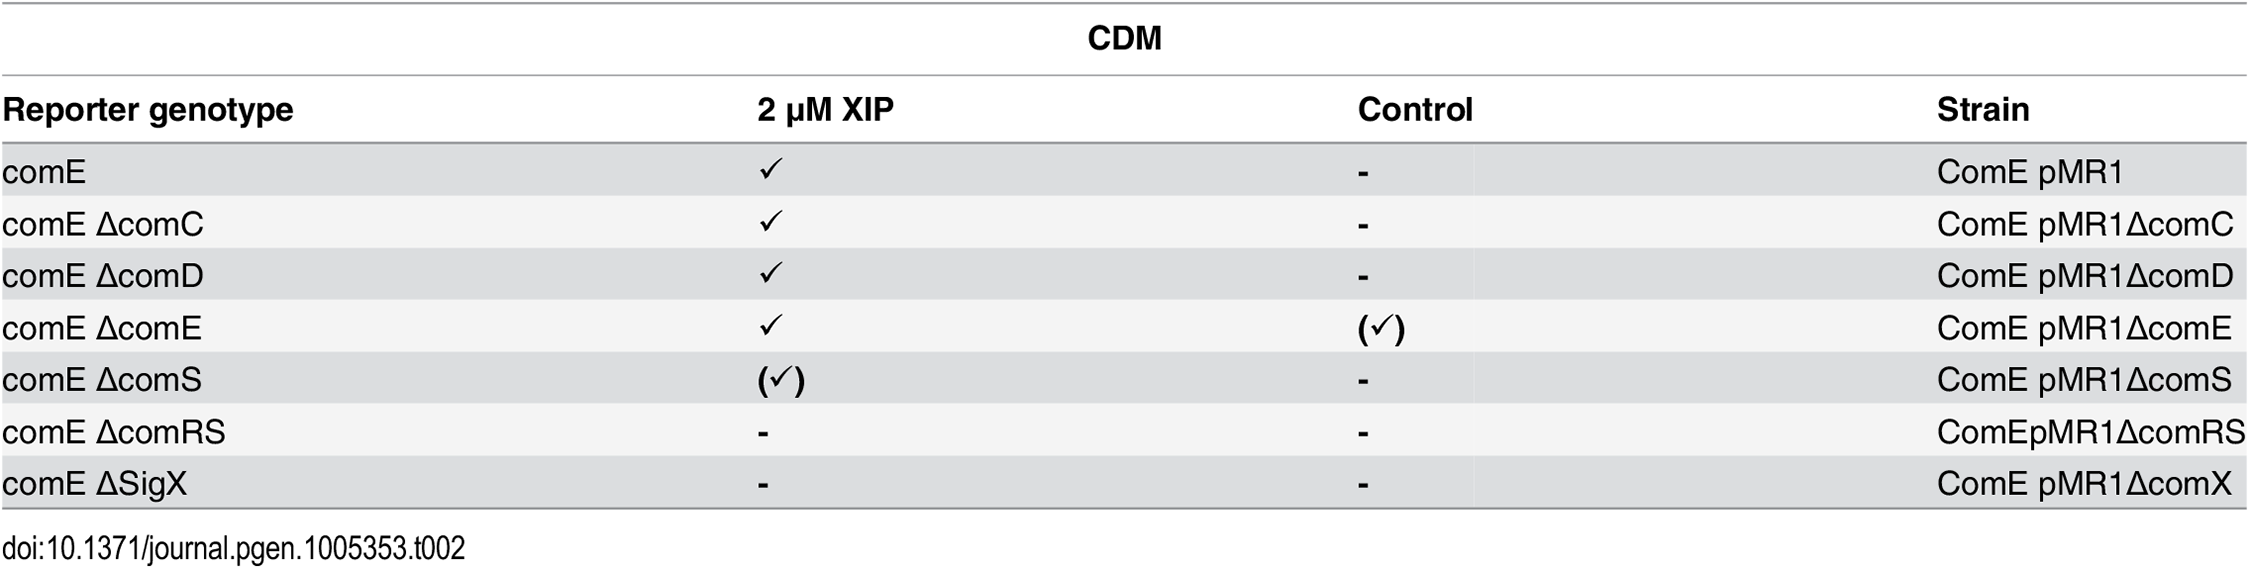 Expression of <i>comE</i> in different gene deletion background in CDM under XIP induced conditions.